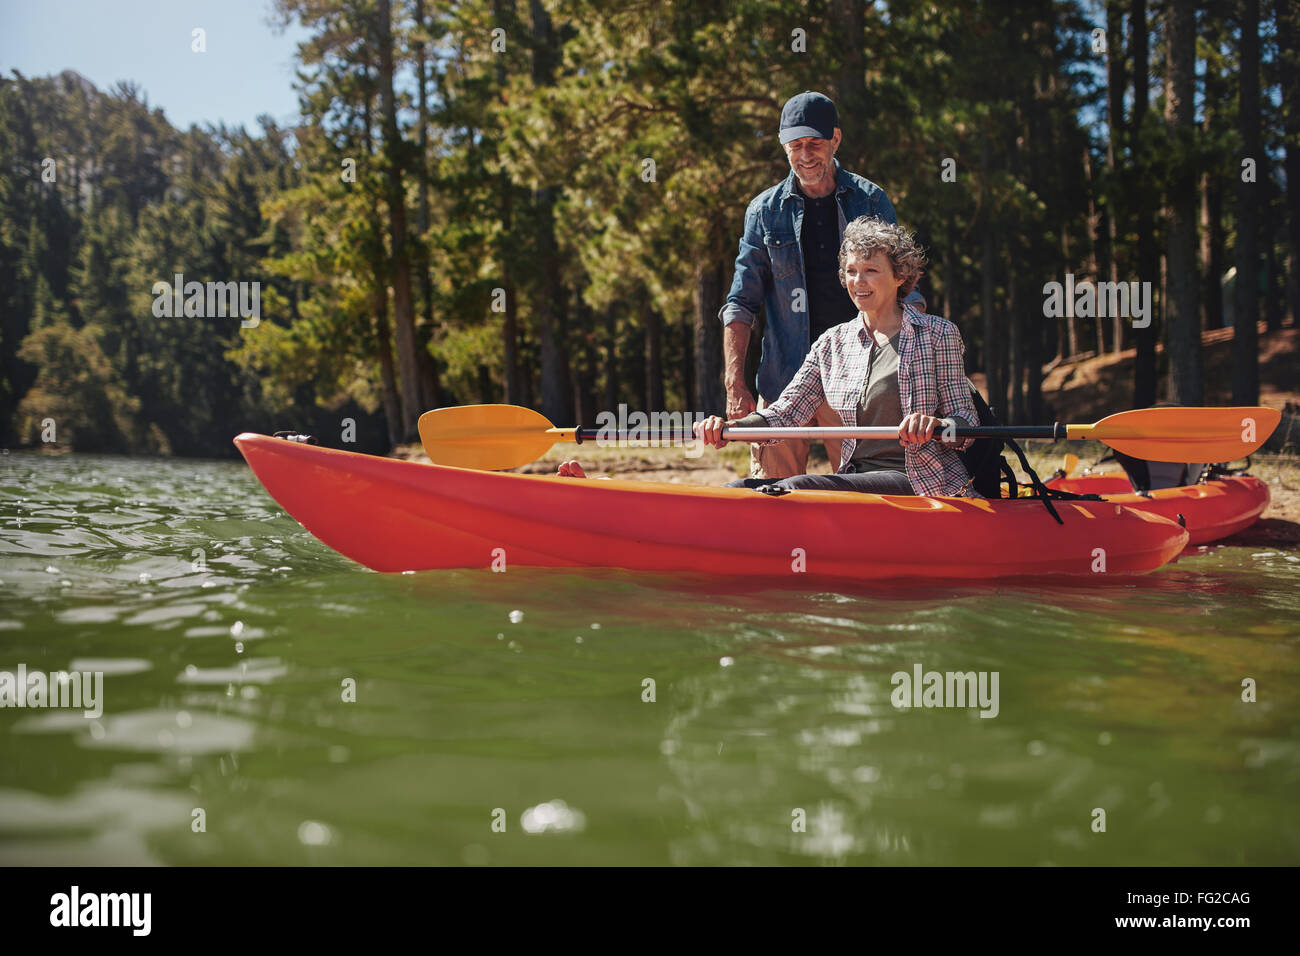 Portrait of mature man giving instruction to woman paddling a kayak in the lake. Senior woman getting kayaking lessons - Stock Image